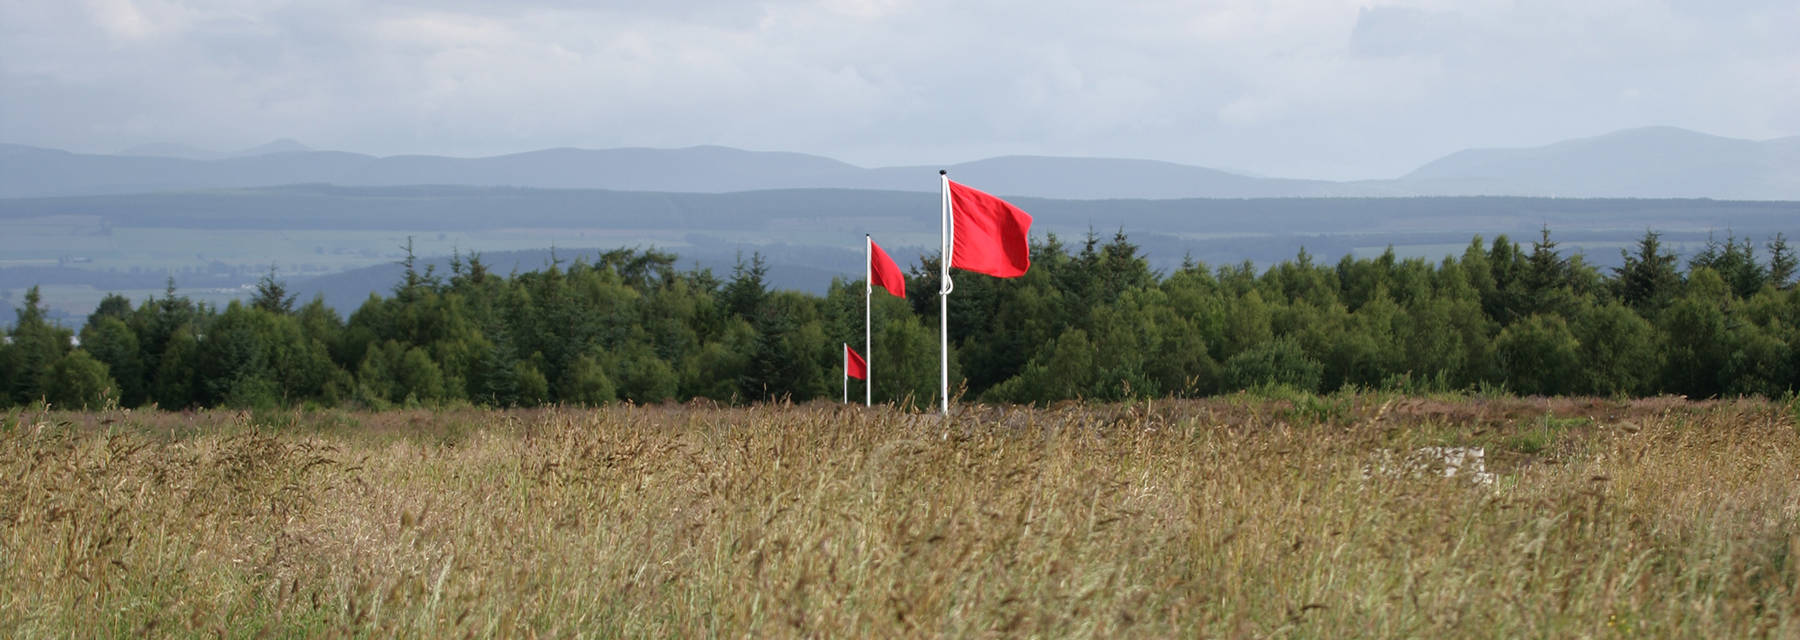 Culloden Battlefield with red flags blowing in the wind